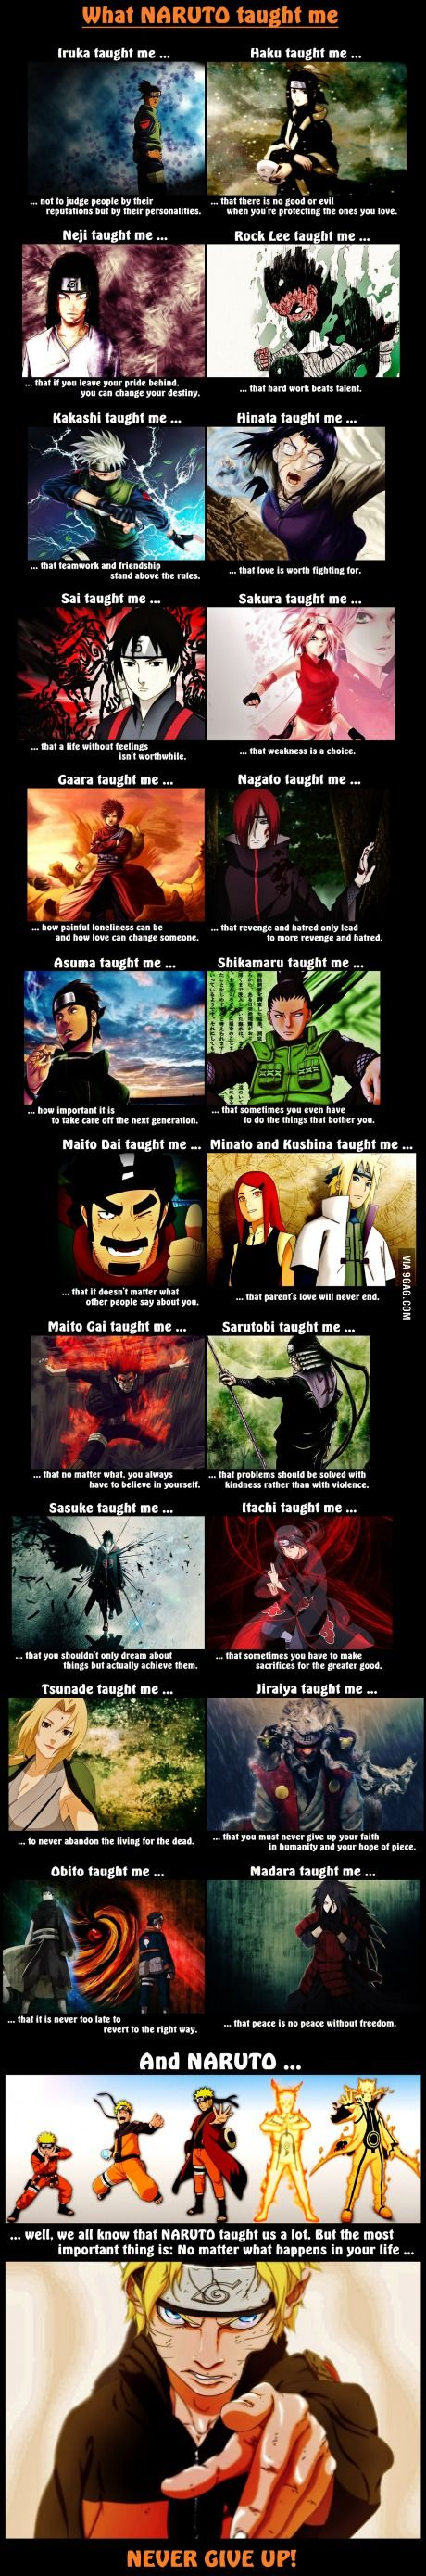 """What Naruto taught me"" i love it!"